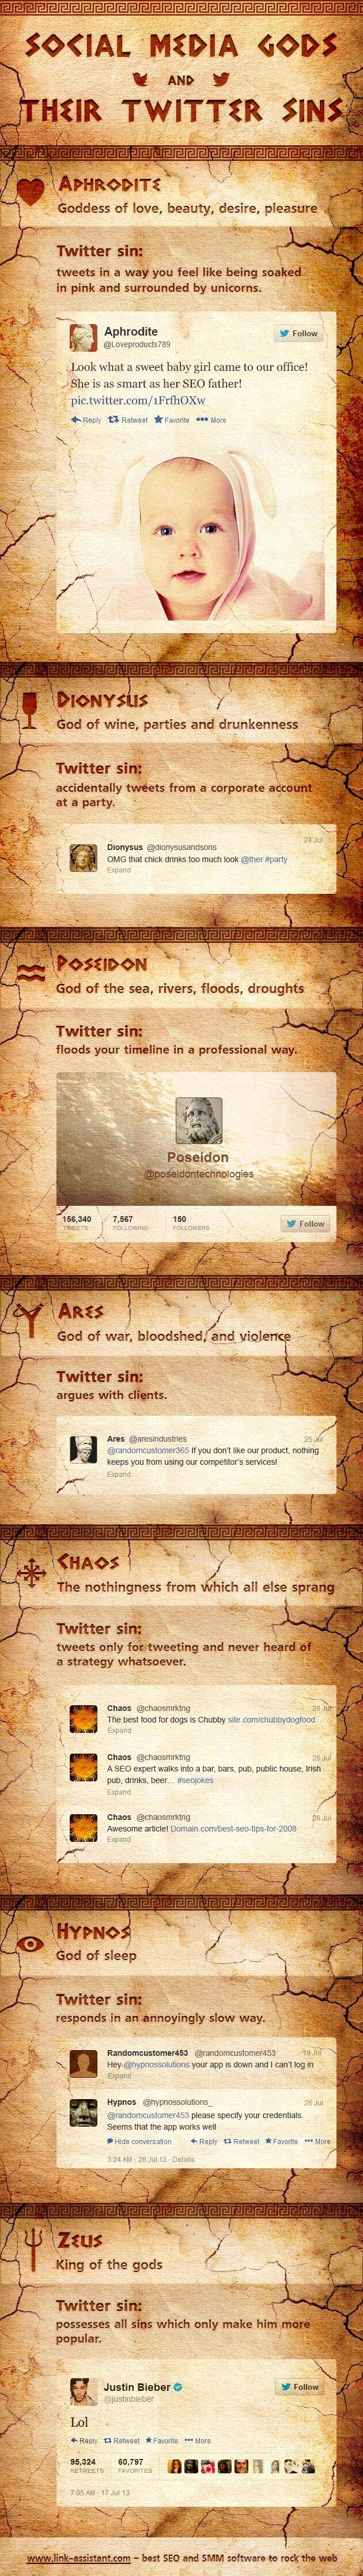 Infographics - social media gods and their Twitter sins